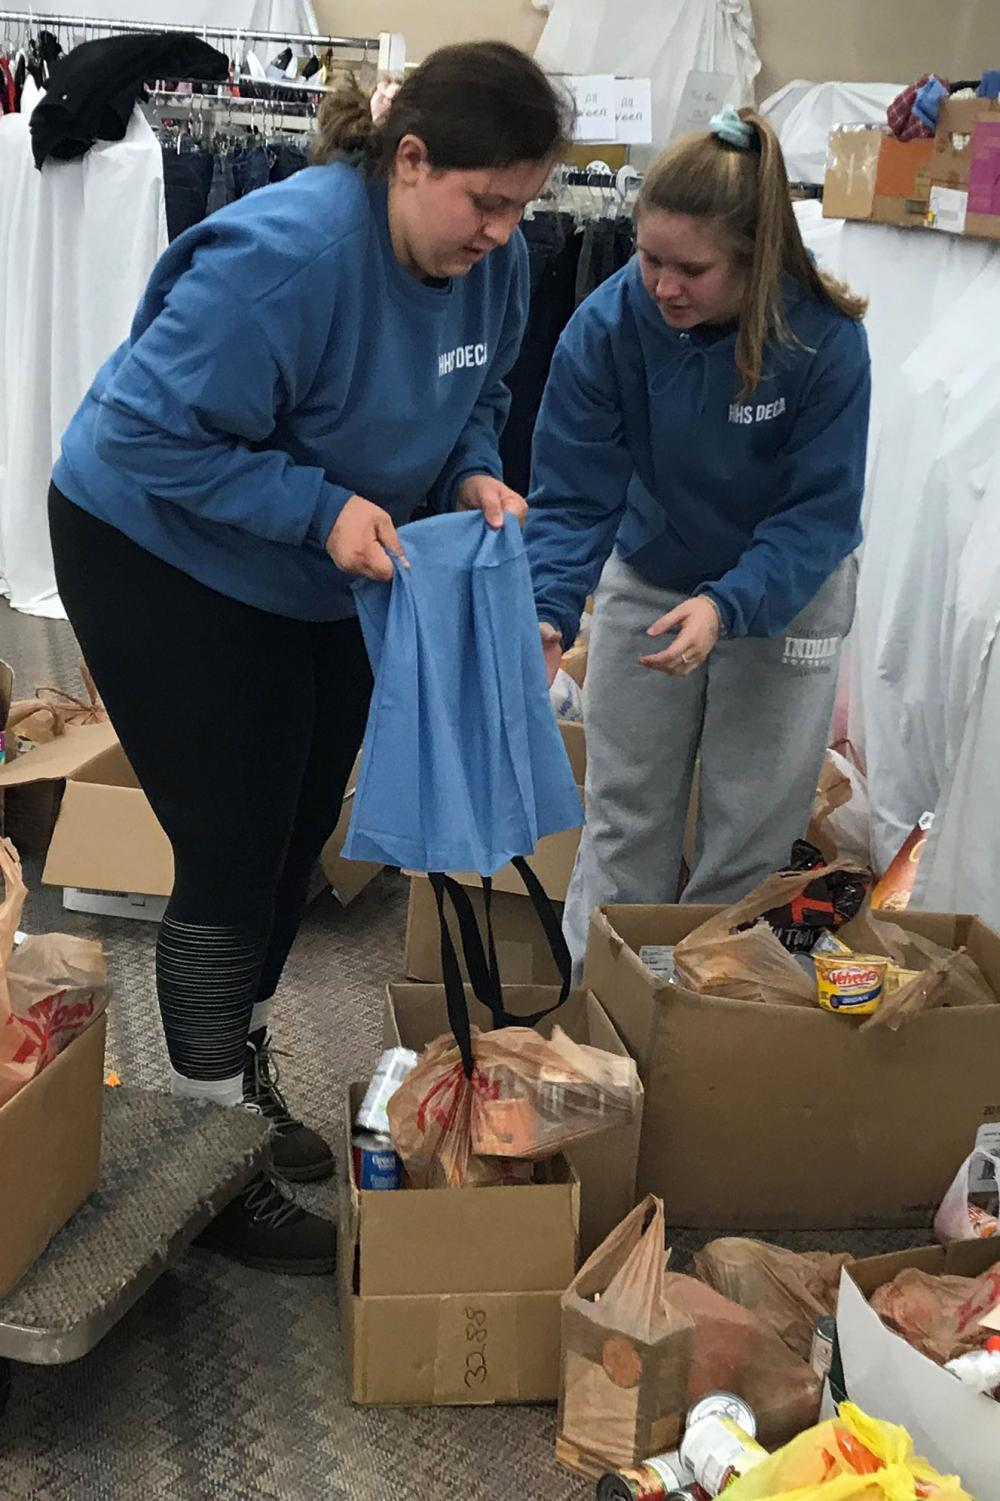 Senior Shyann Schumacher and junior Cassidy Prough set cans down to be counted and sorted. This is Schumacher's second year helping and Prough's first year.